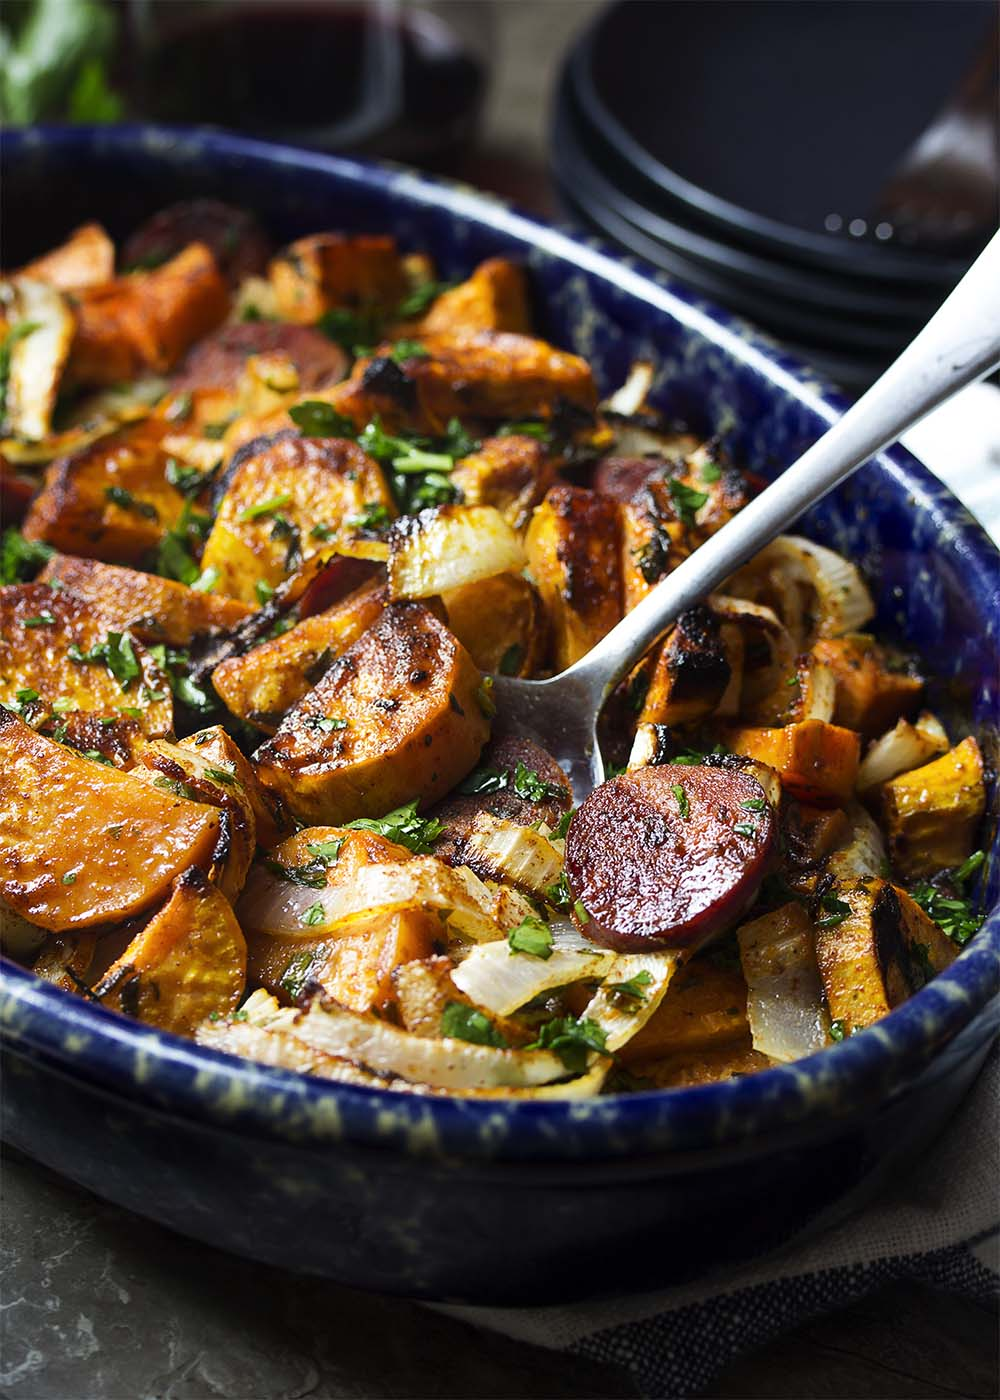 Close up of a casserole dish of delicious baked chorizo, sweet potatoes, and onions with a serving spoon ready to scoop out a portion.